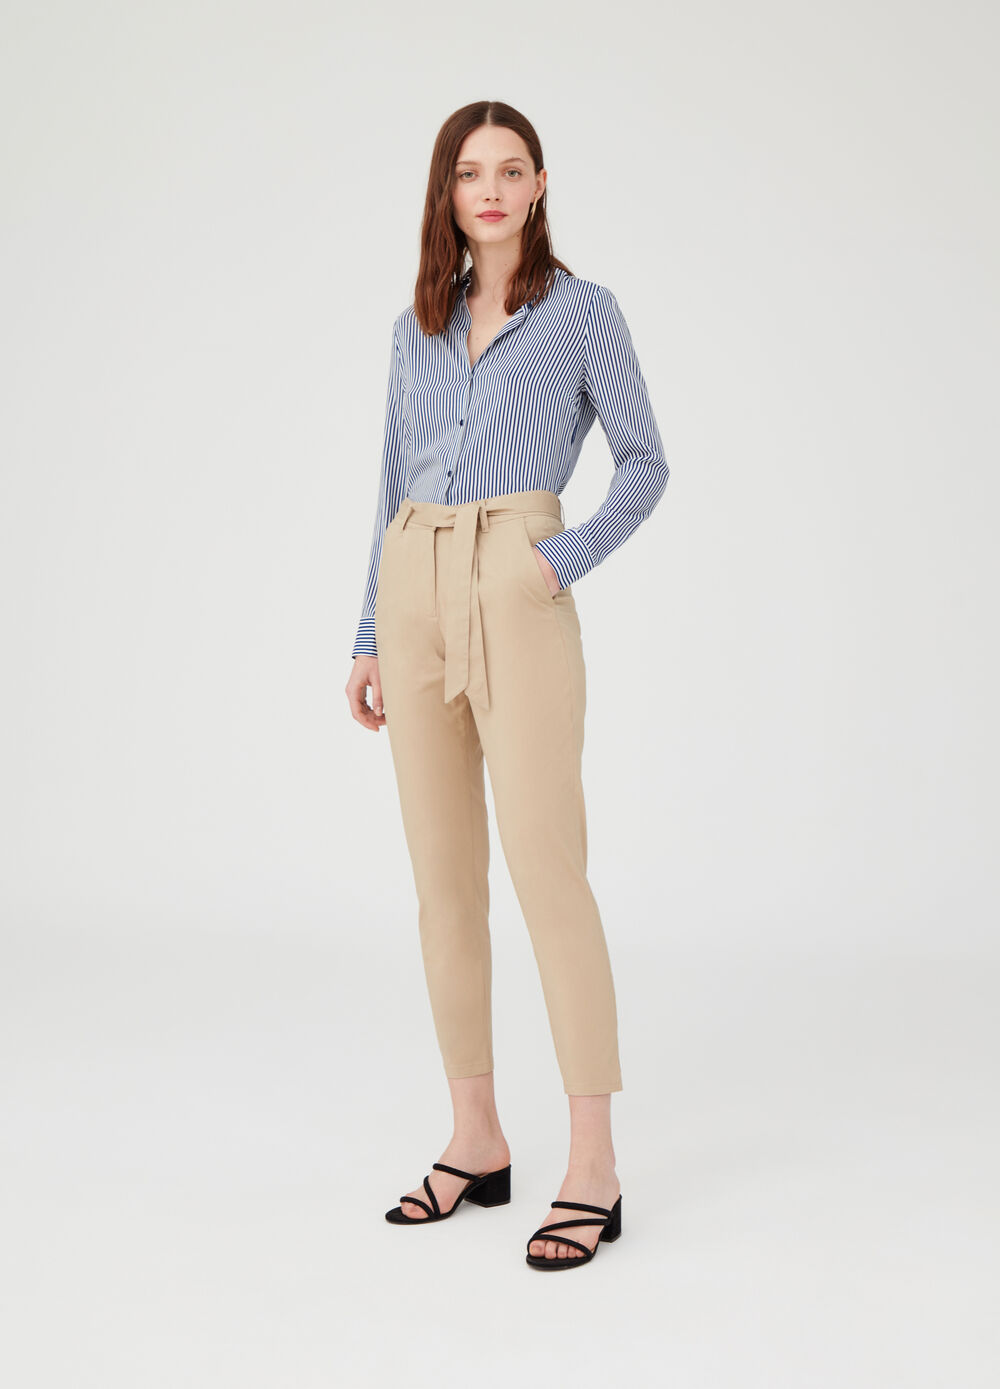 Carrot-fit trousers in poplin with pockets